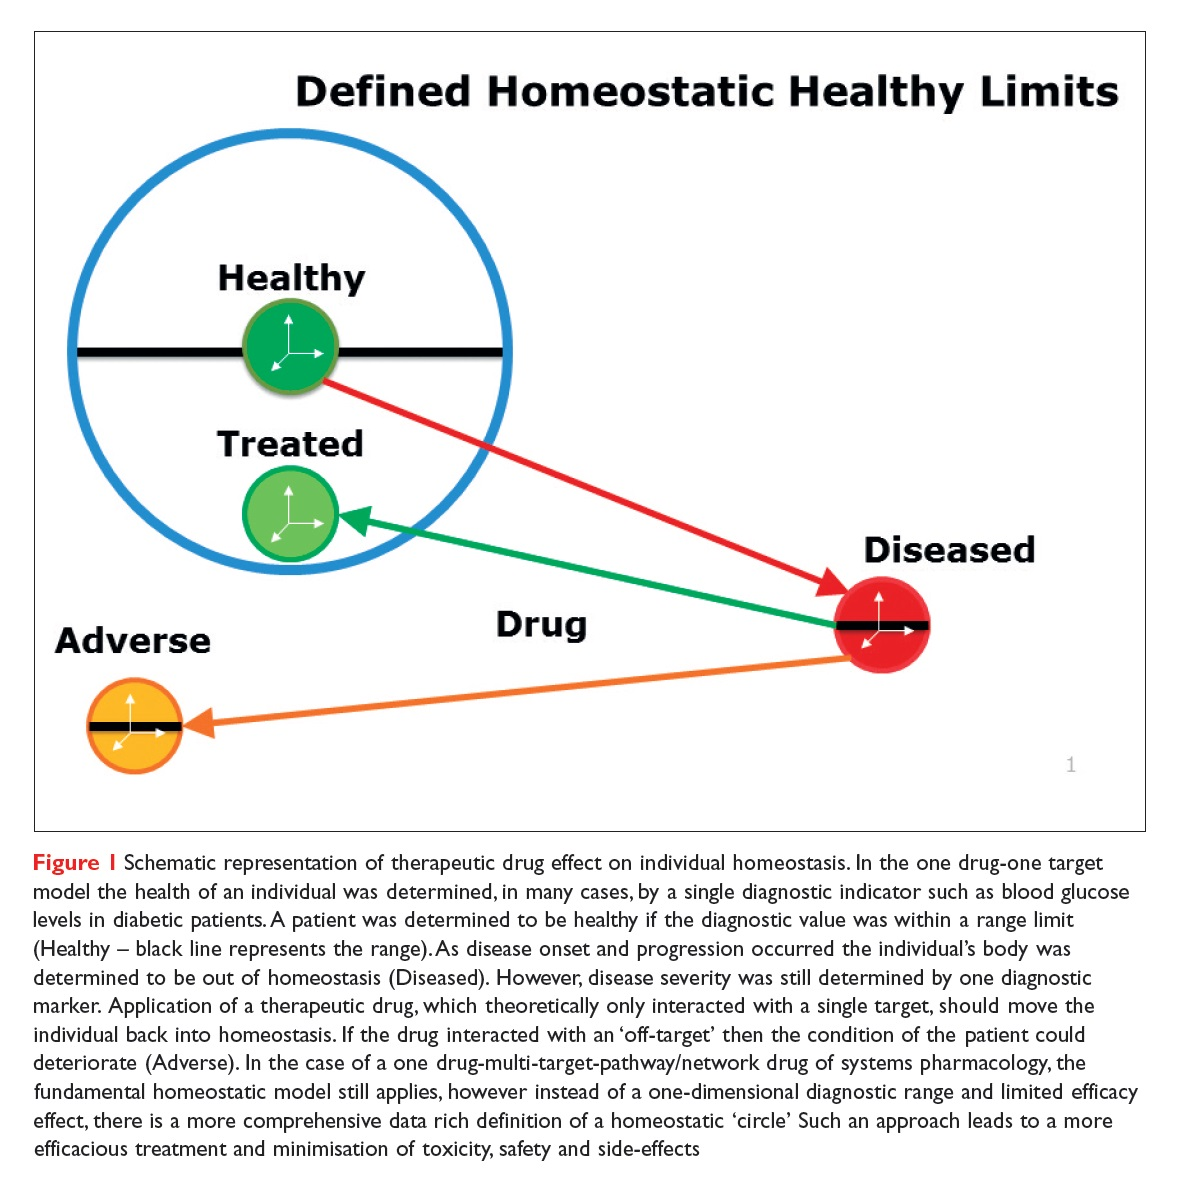 Figure 1 Schematic representation of therapeutic drug effect on individual homeostasis